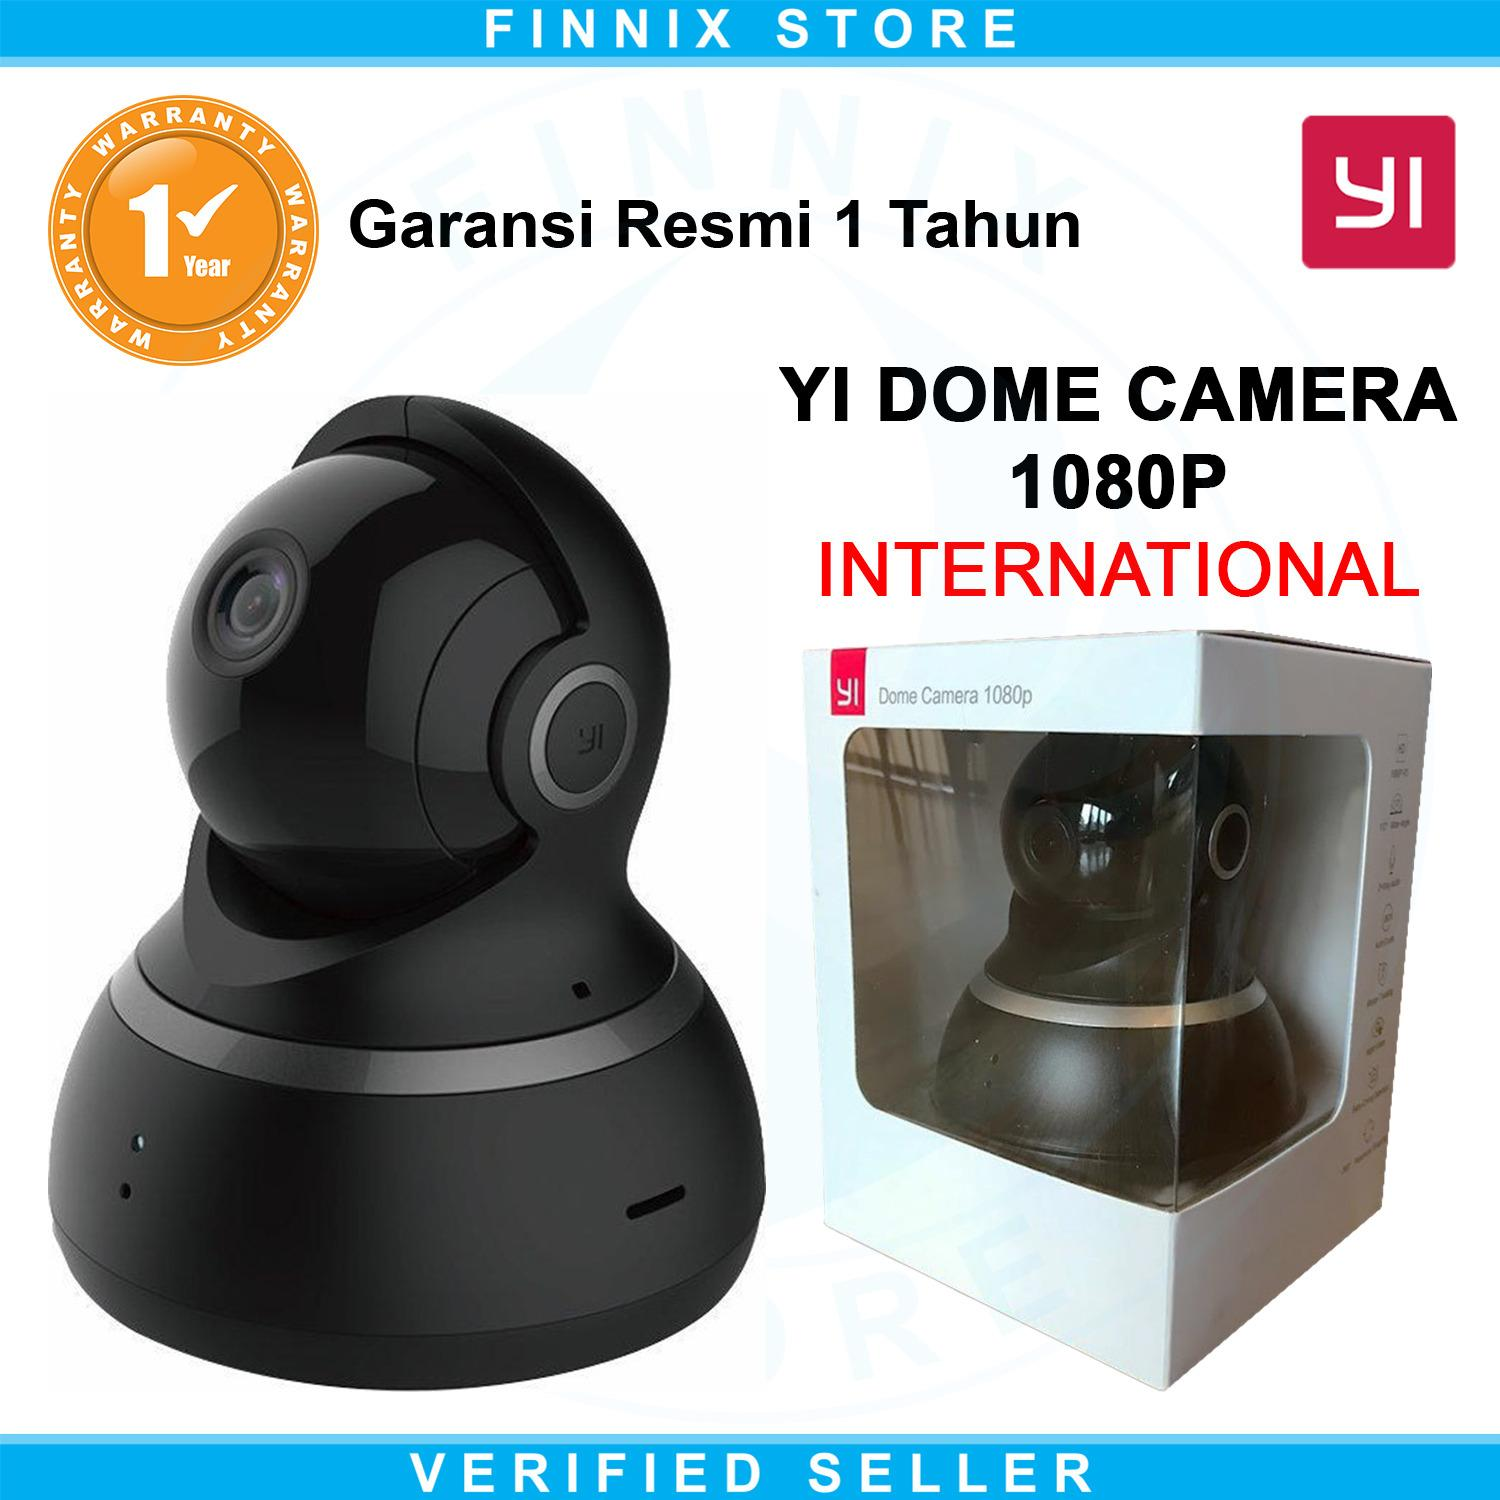 Xiaomi Yi Dome Camera 1080P Smart IP Camera CCTV English Version (International)